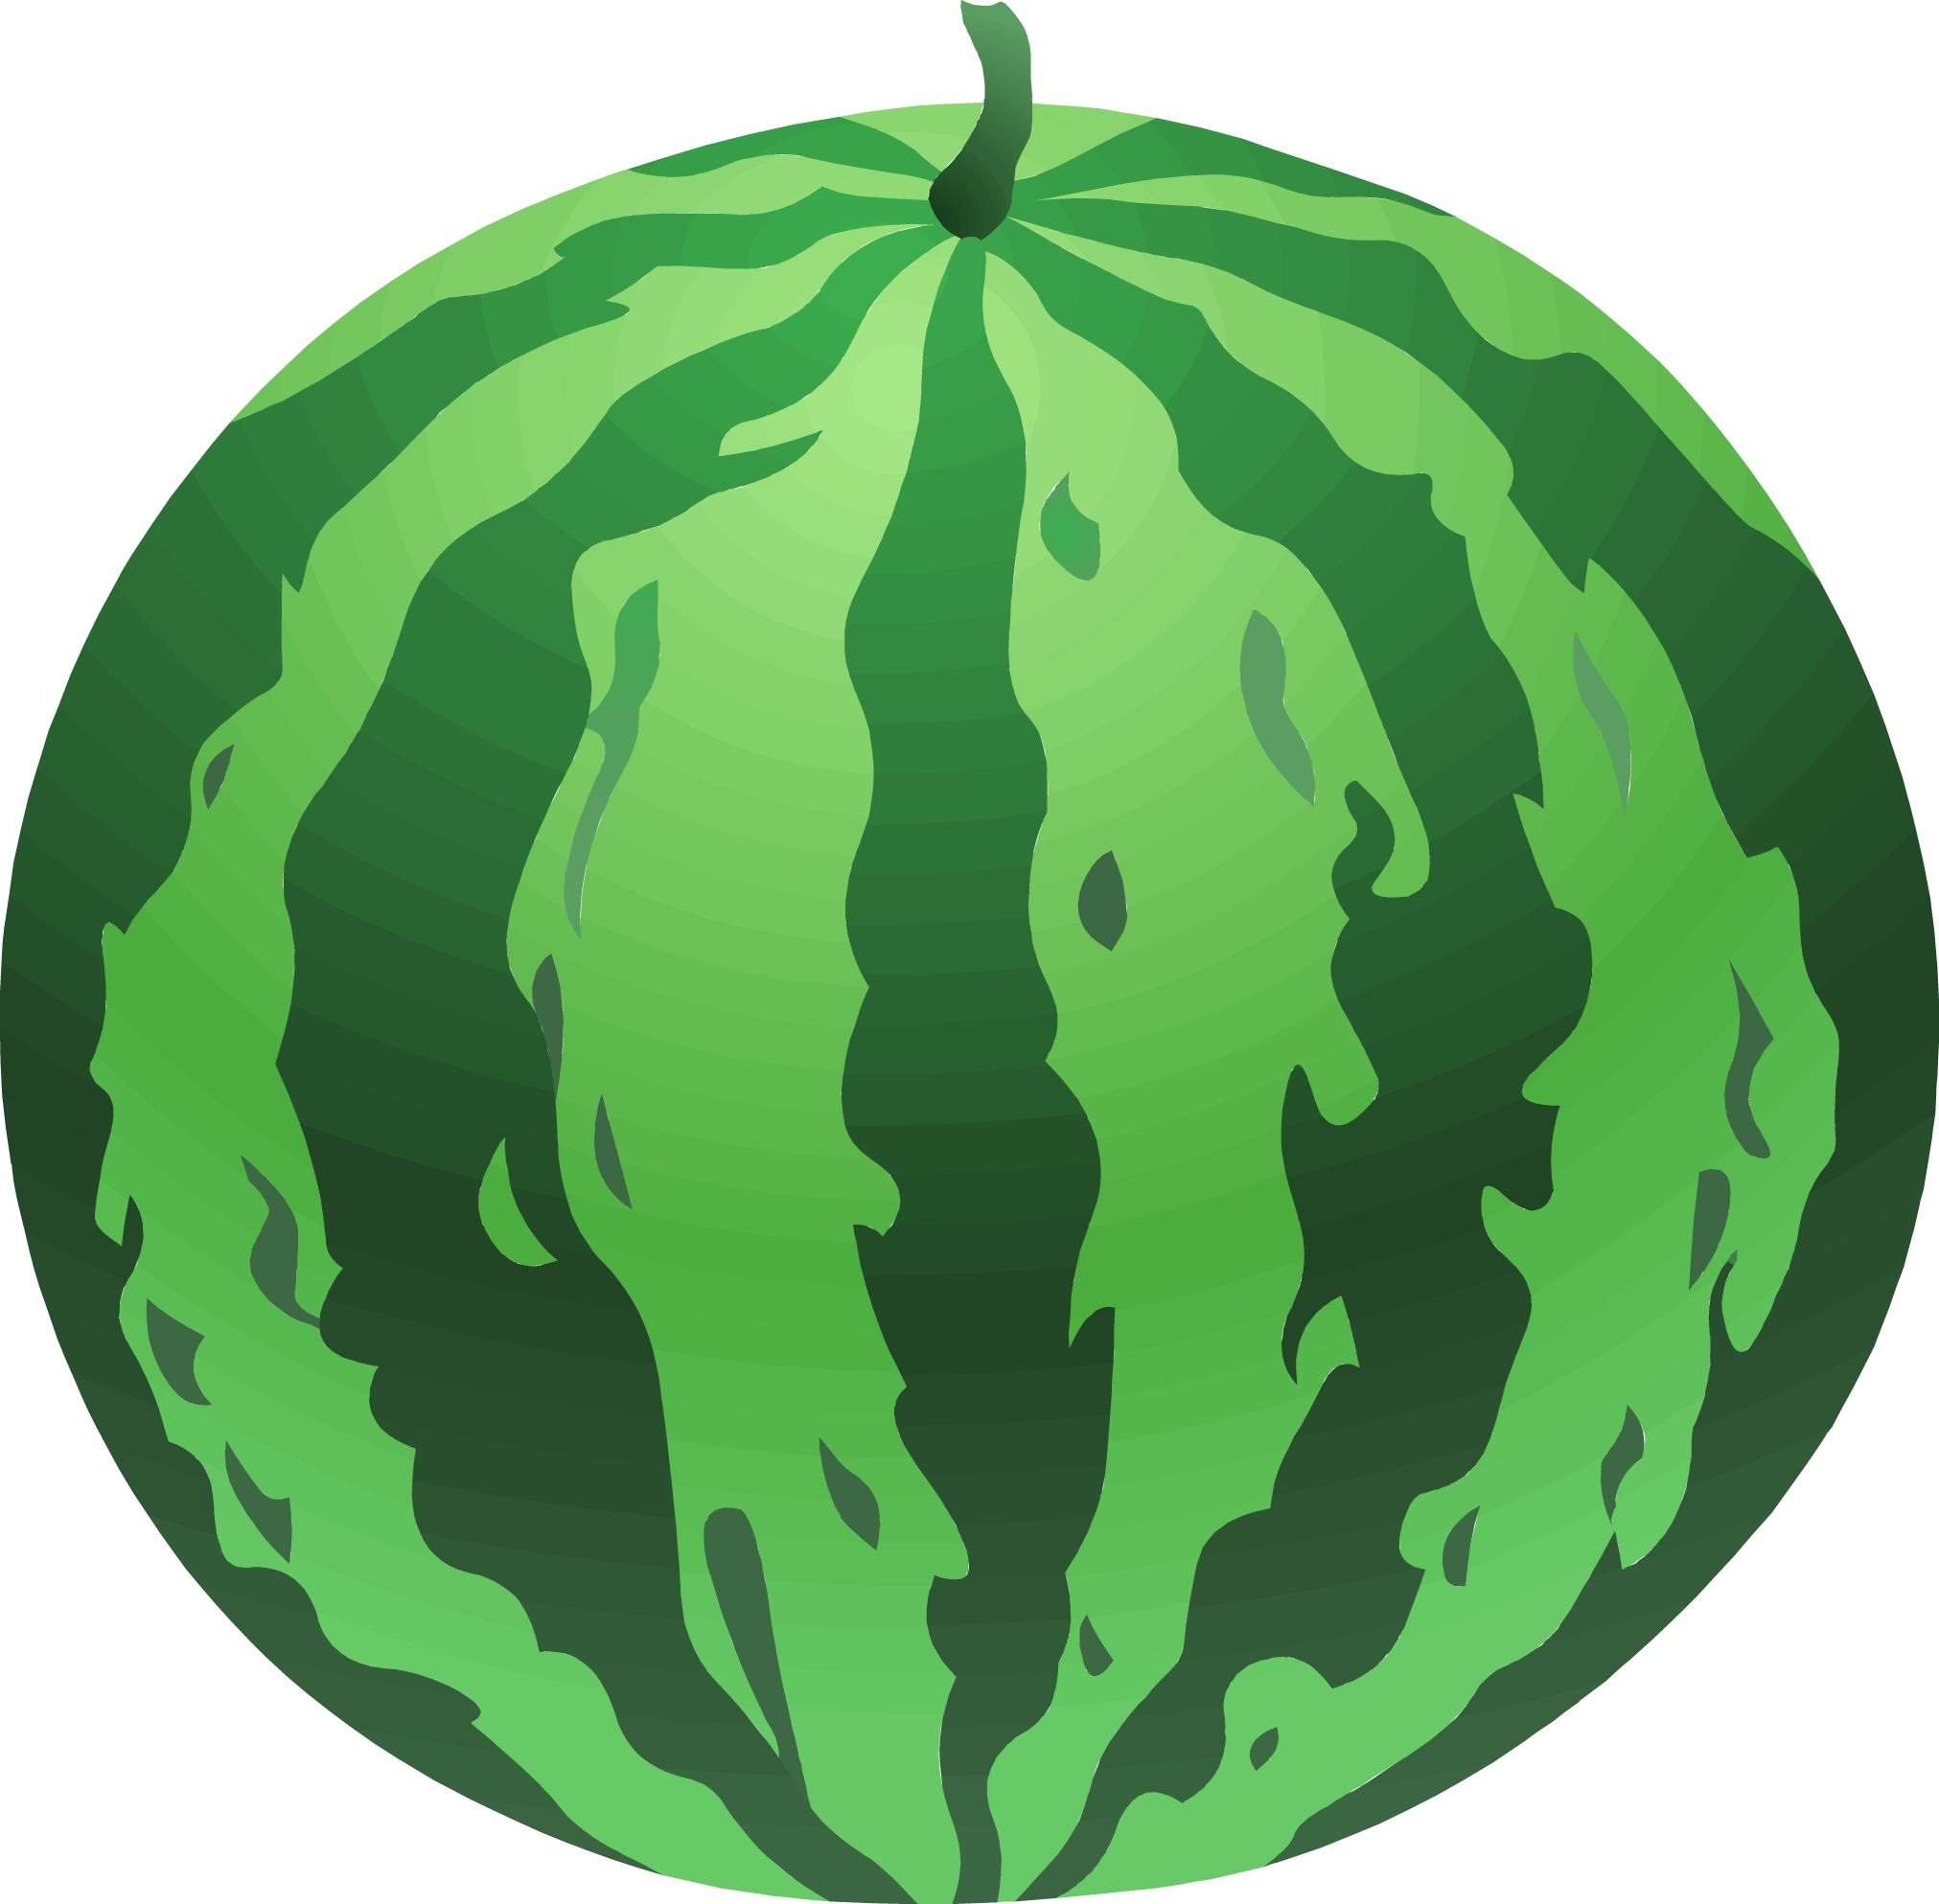 Clipart leaves watermelon. Free clip art image